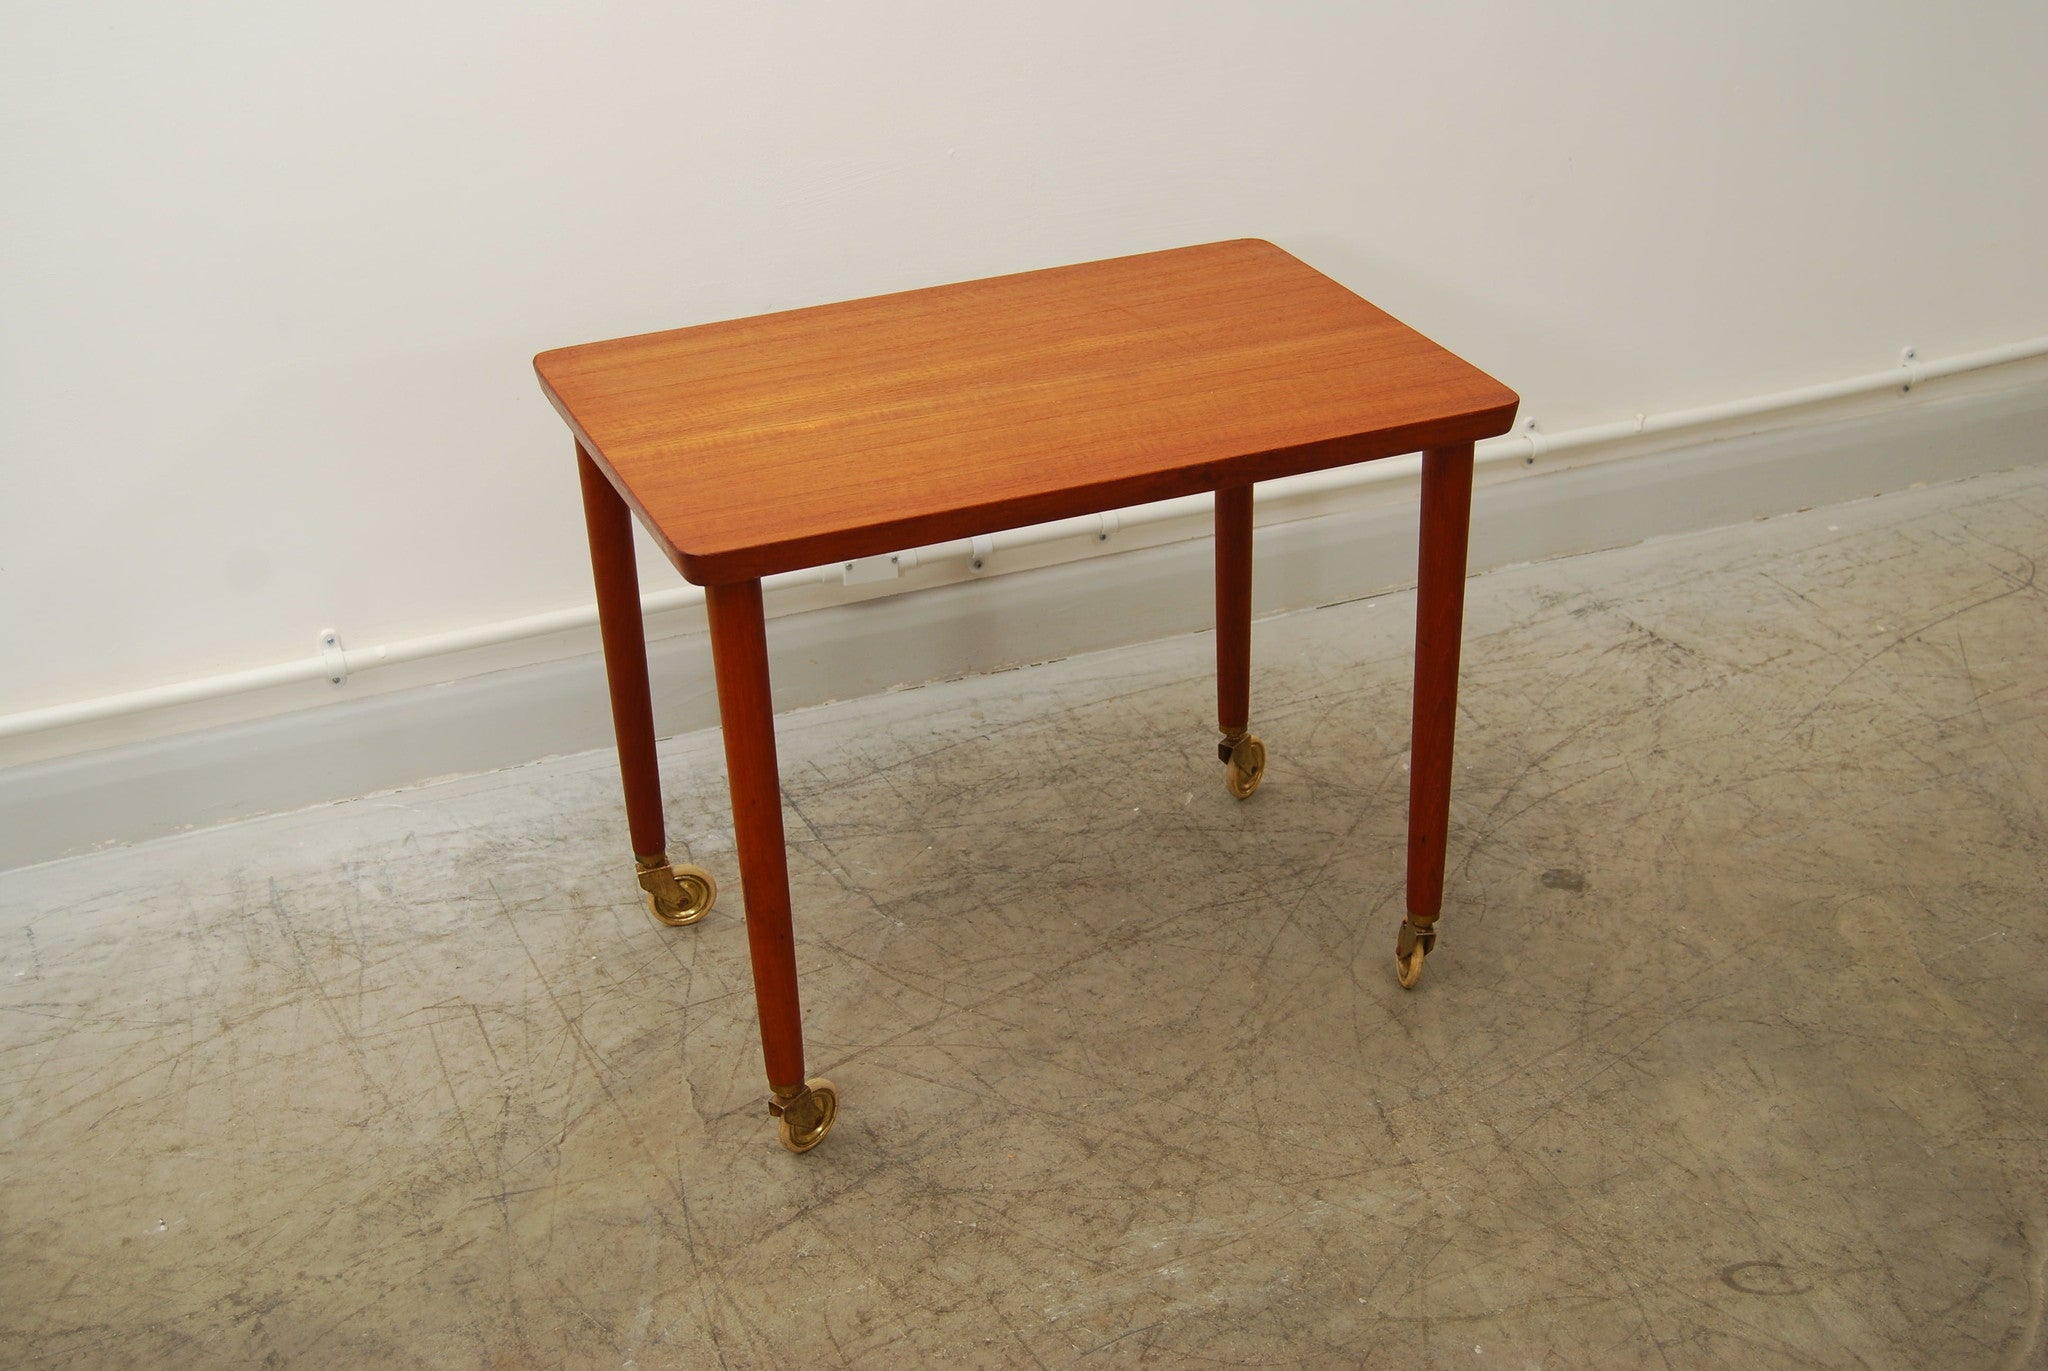 Teak trolley table by Poul Hundevad